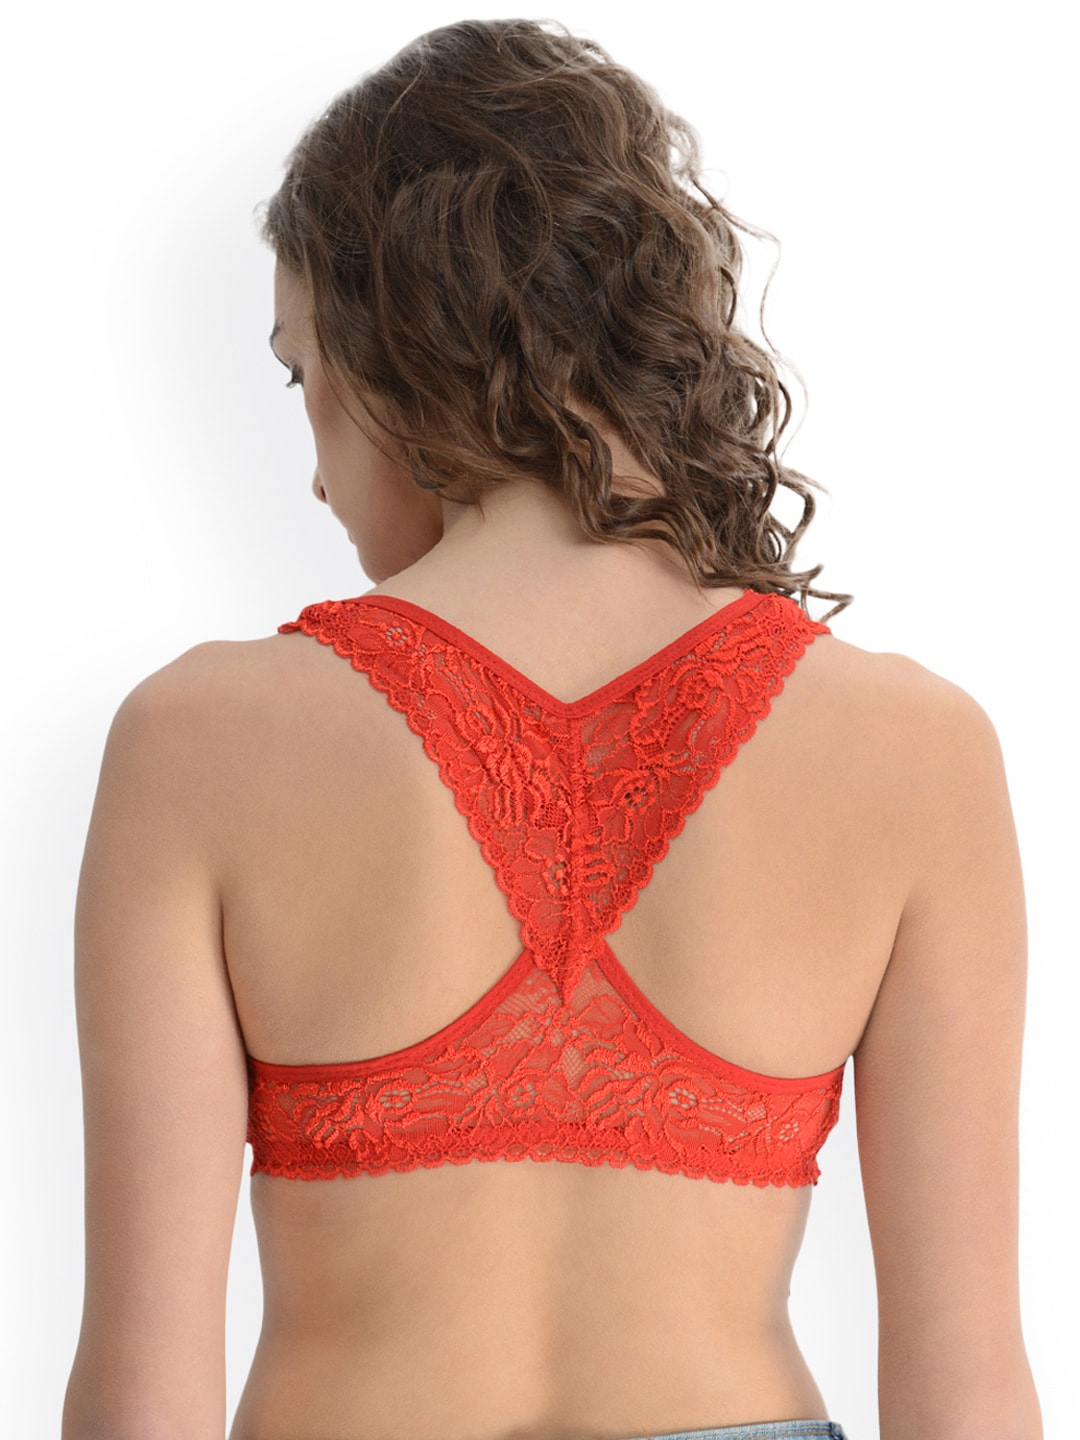 Lace Bra - Buy Lace Bras for Women Online in India  9713b2211